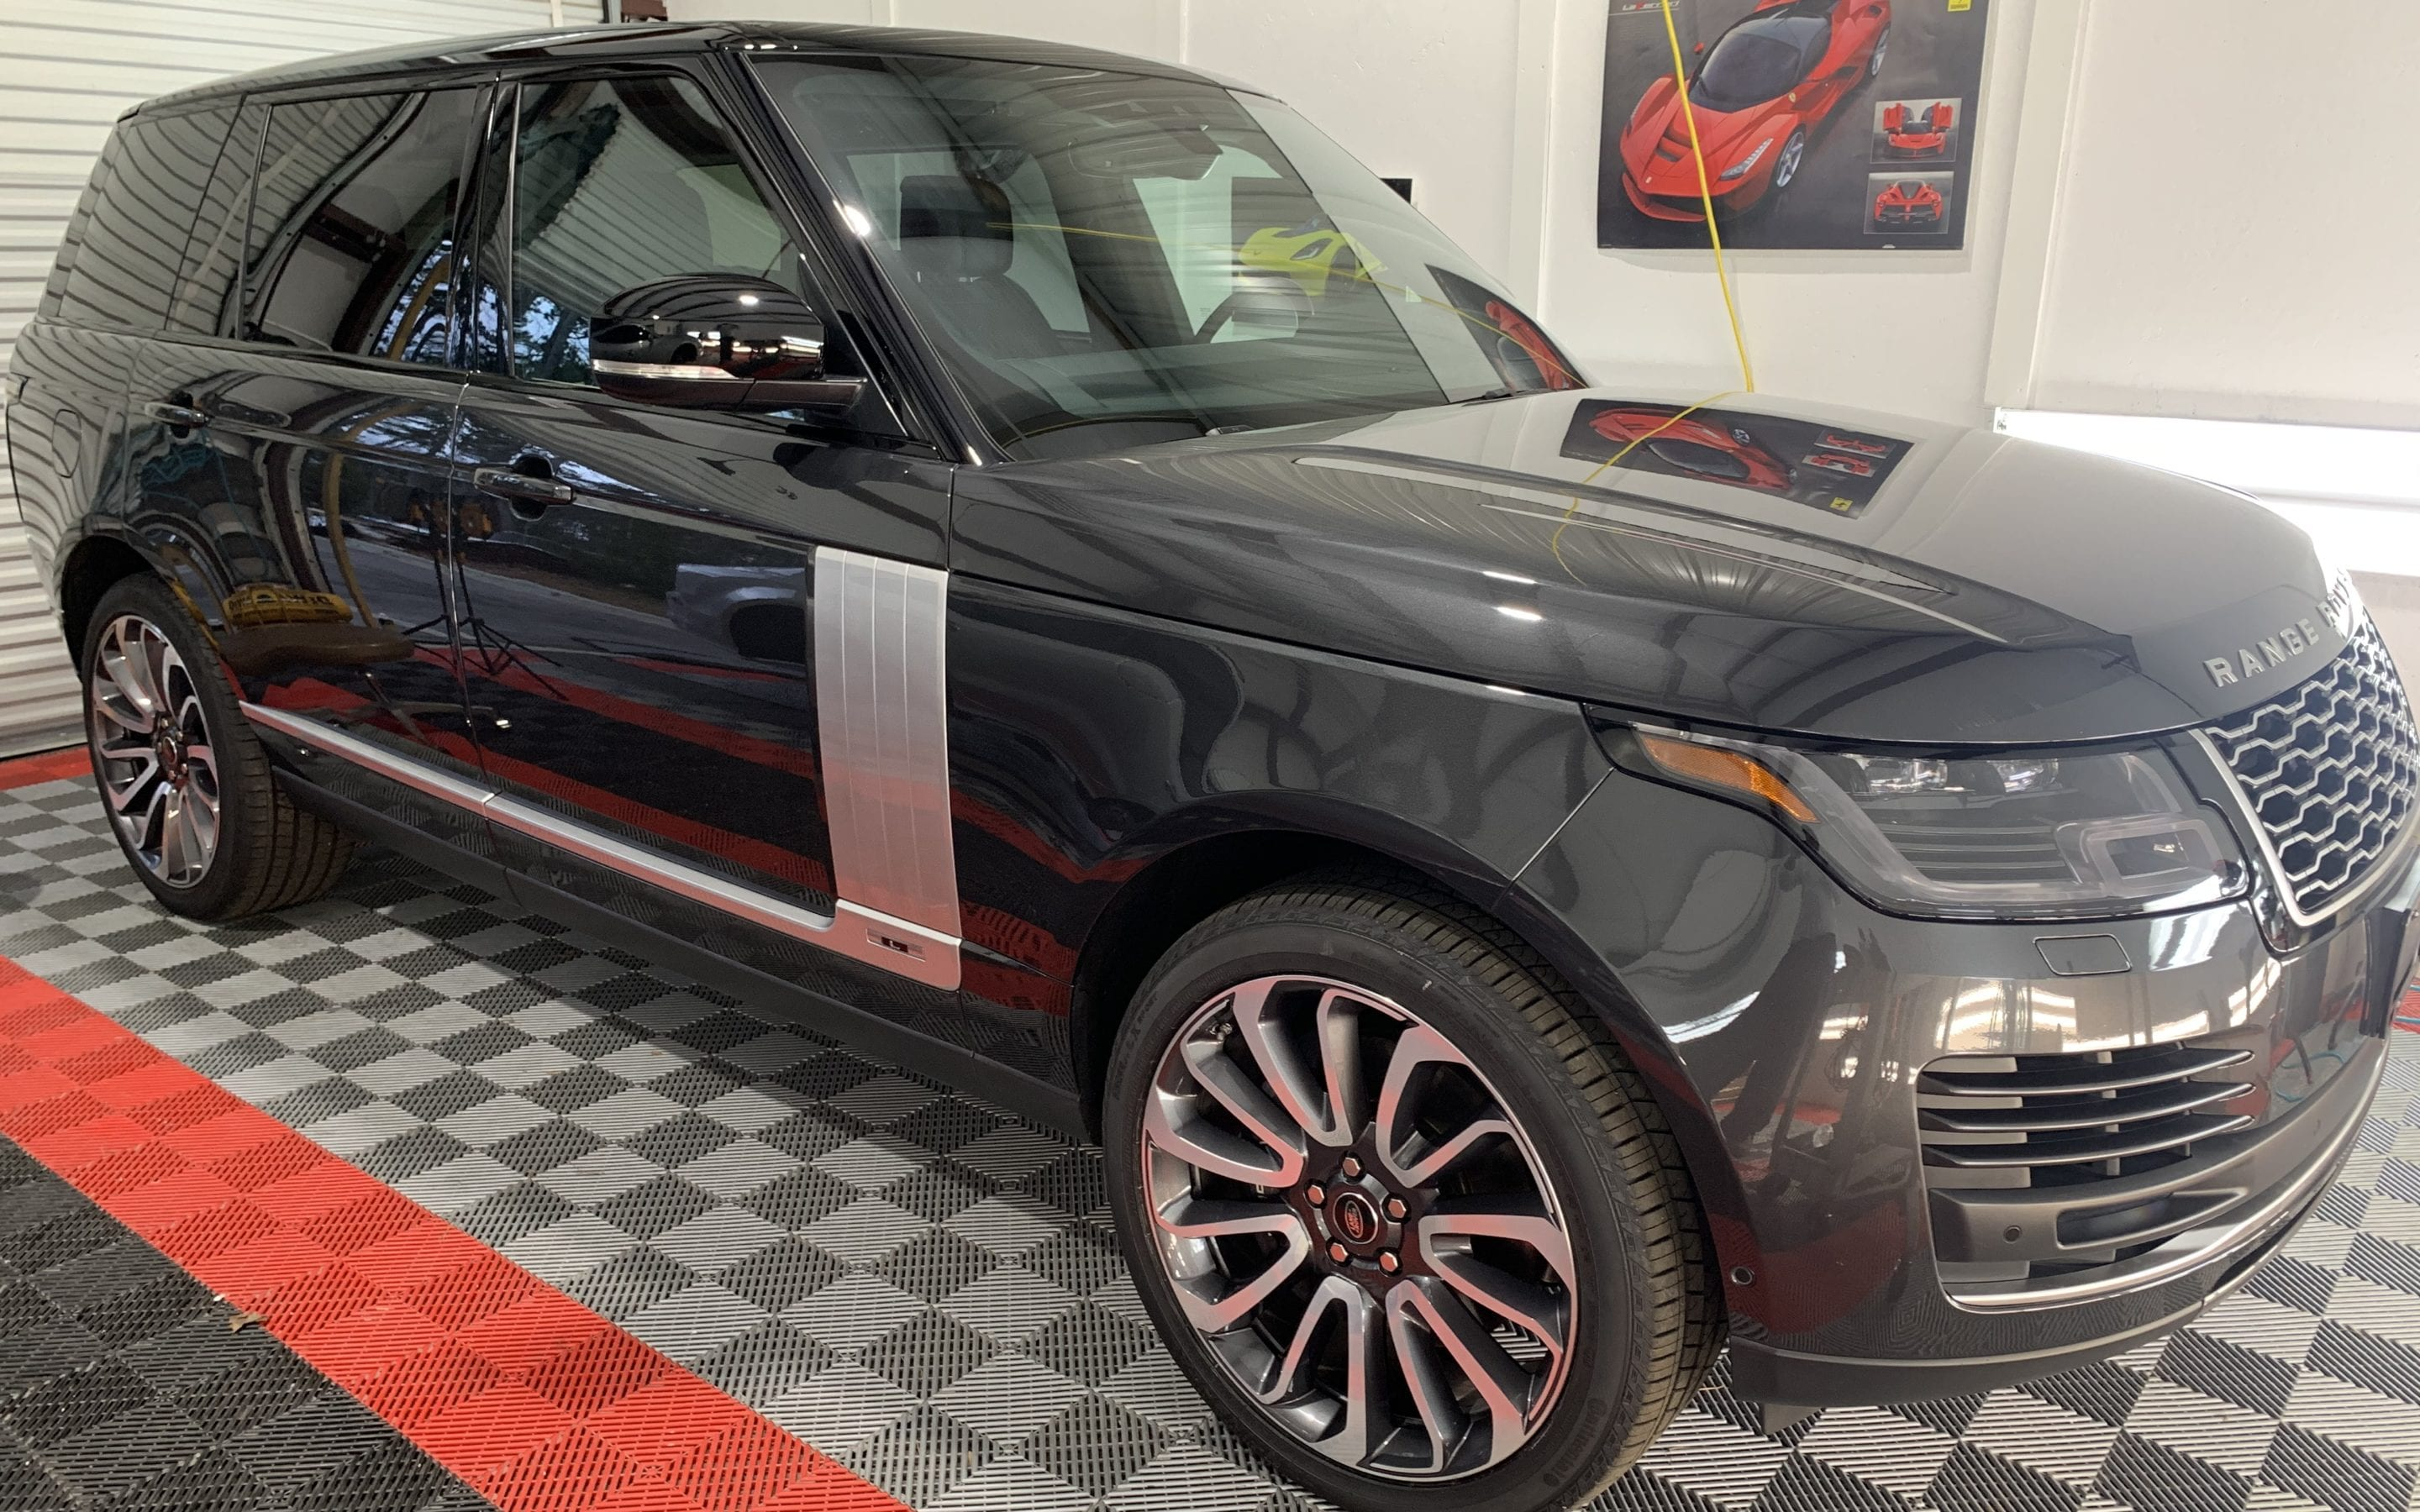 Photo of a Black Range Rover Ceramic Coating Raleigh NC